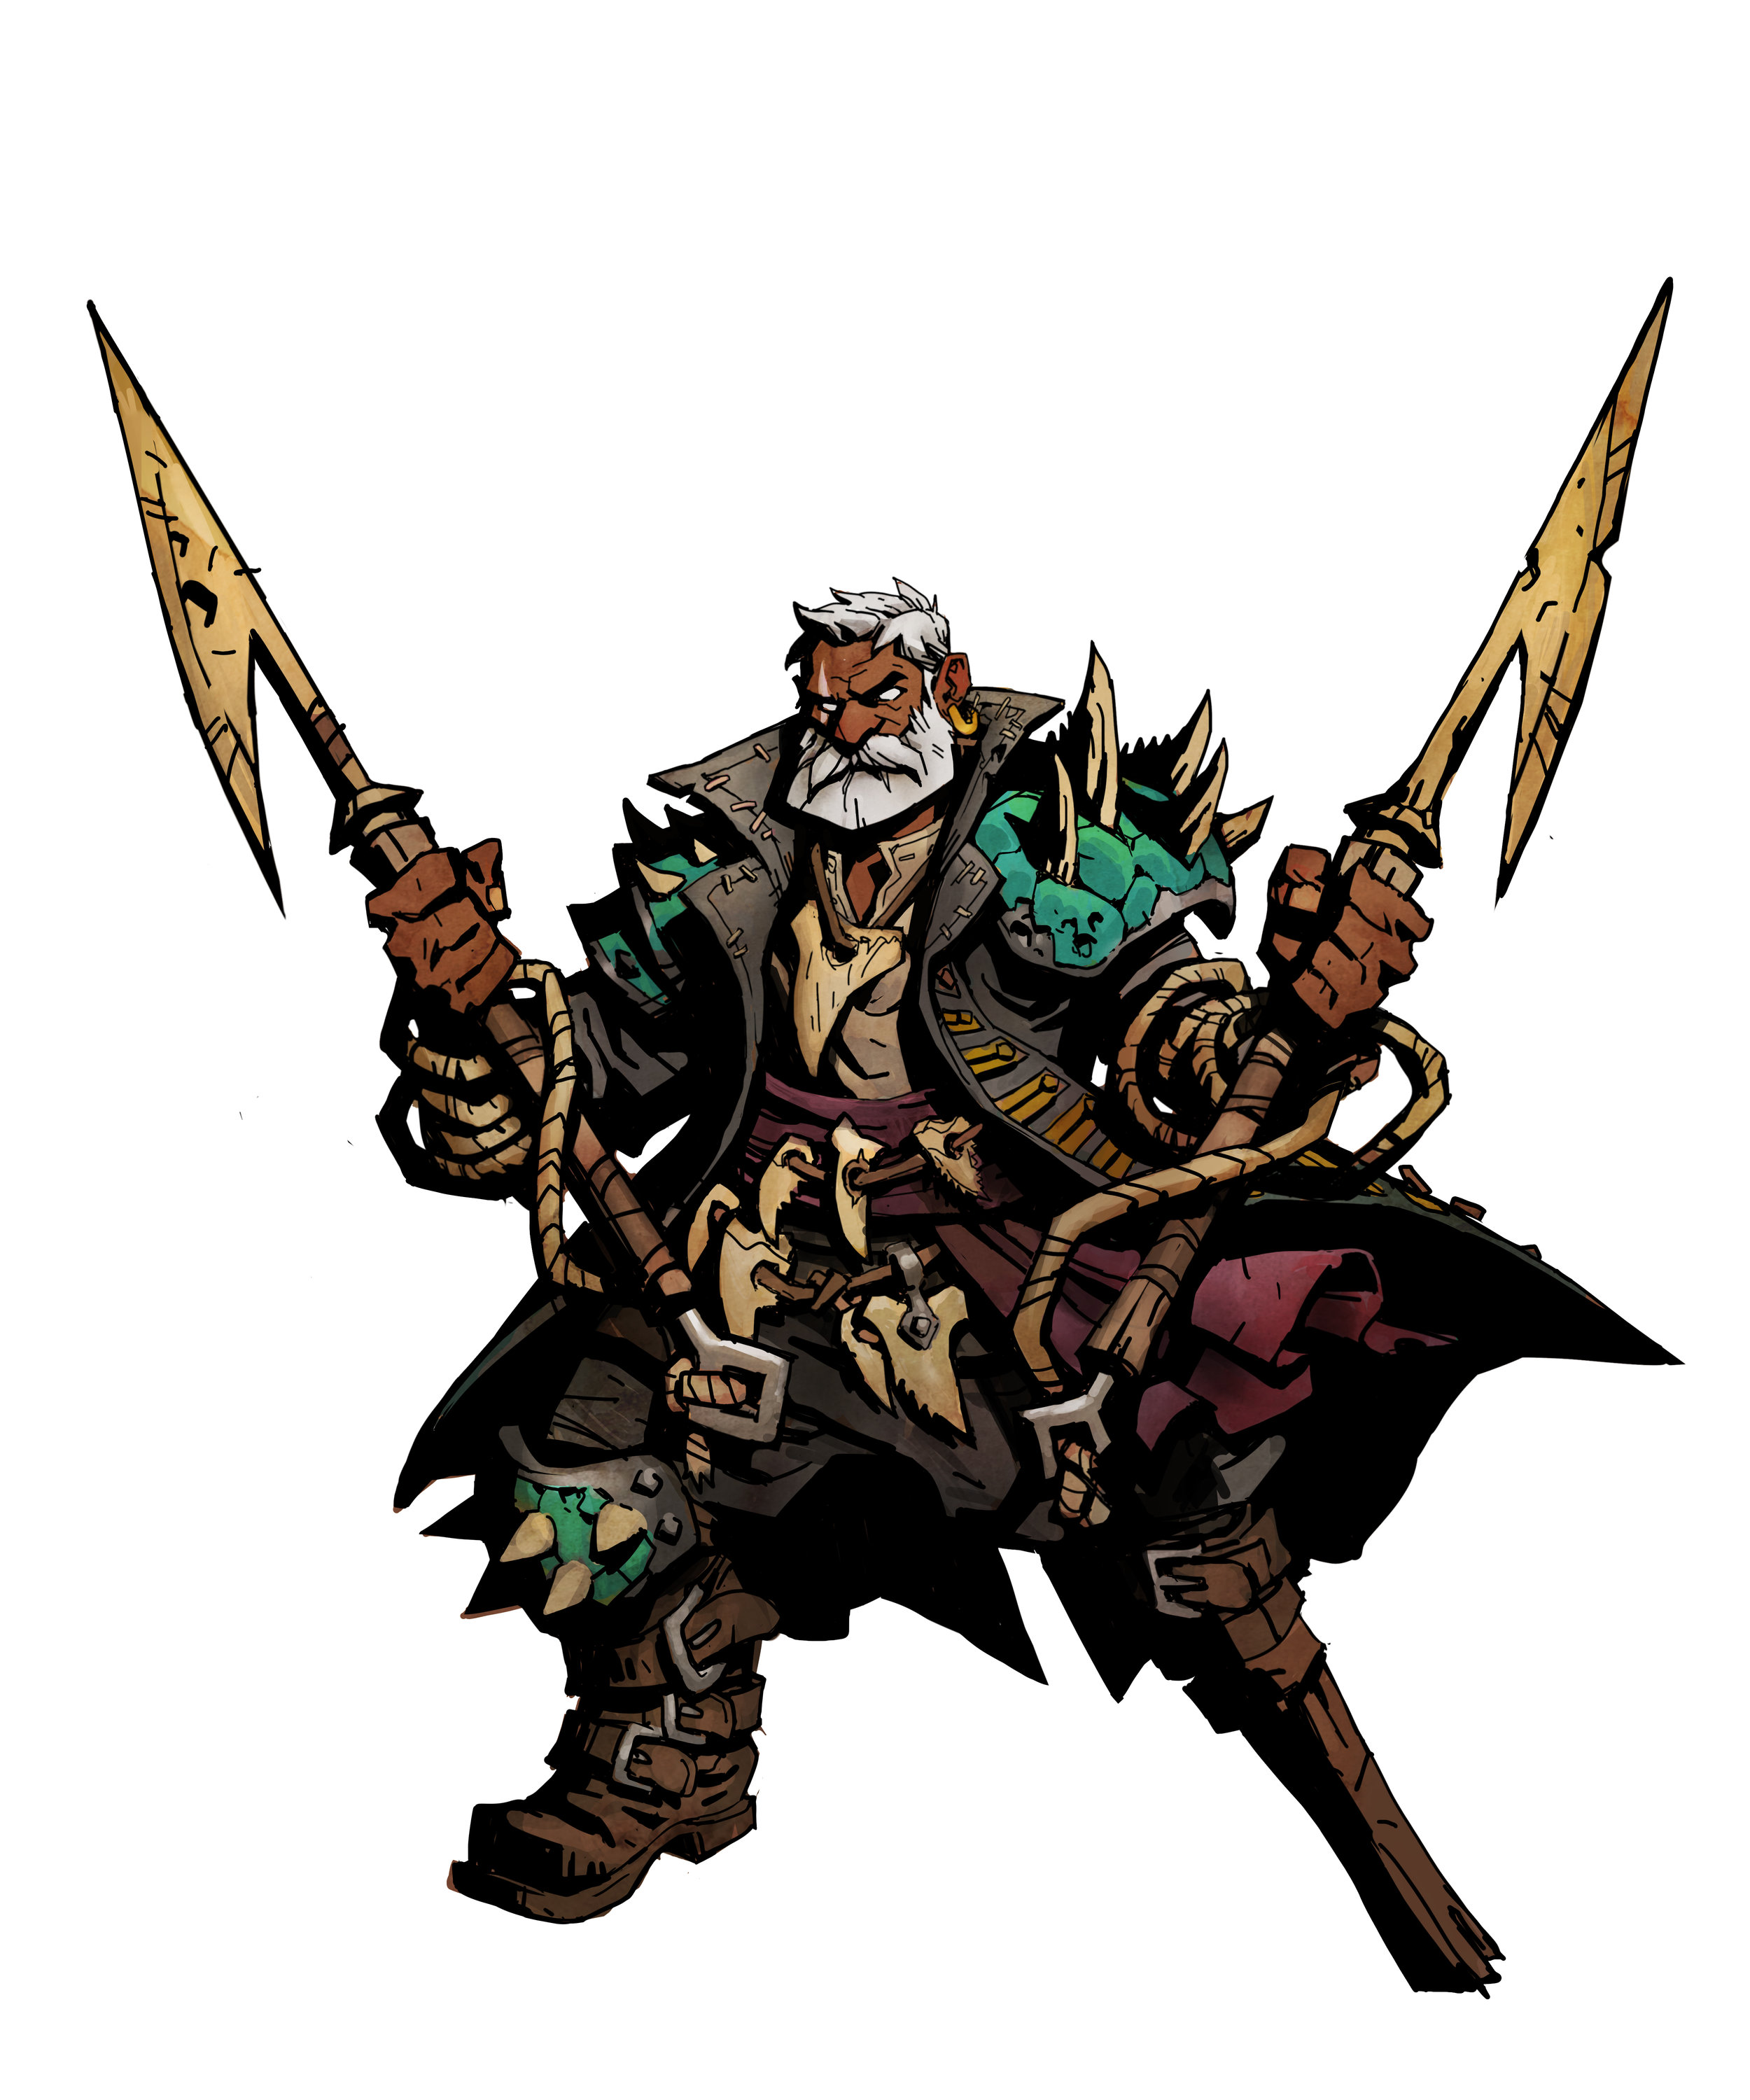 """Leviathan Hunter - Q: When I'm impaled by harpoons from the attack """"Dead On,"""" what happens?A: You are impaled with harpoons, you can't move or attack until you remove the harpoons. To remove the harpoons, the player needs to spend 1 Movement Speed. Q: If I'm impaled from """"Dead On,"""" and I'm knocked back, what happens?A: The player will be knocked back and the harpoons will be removed."""